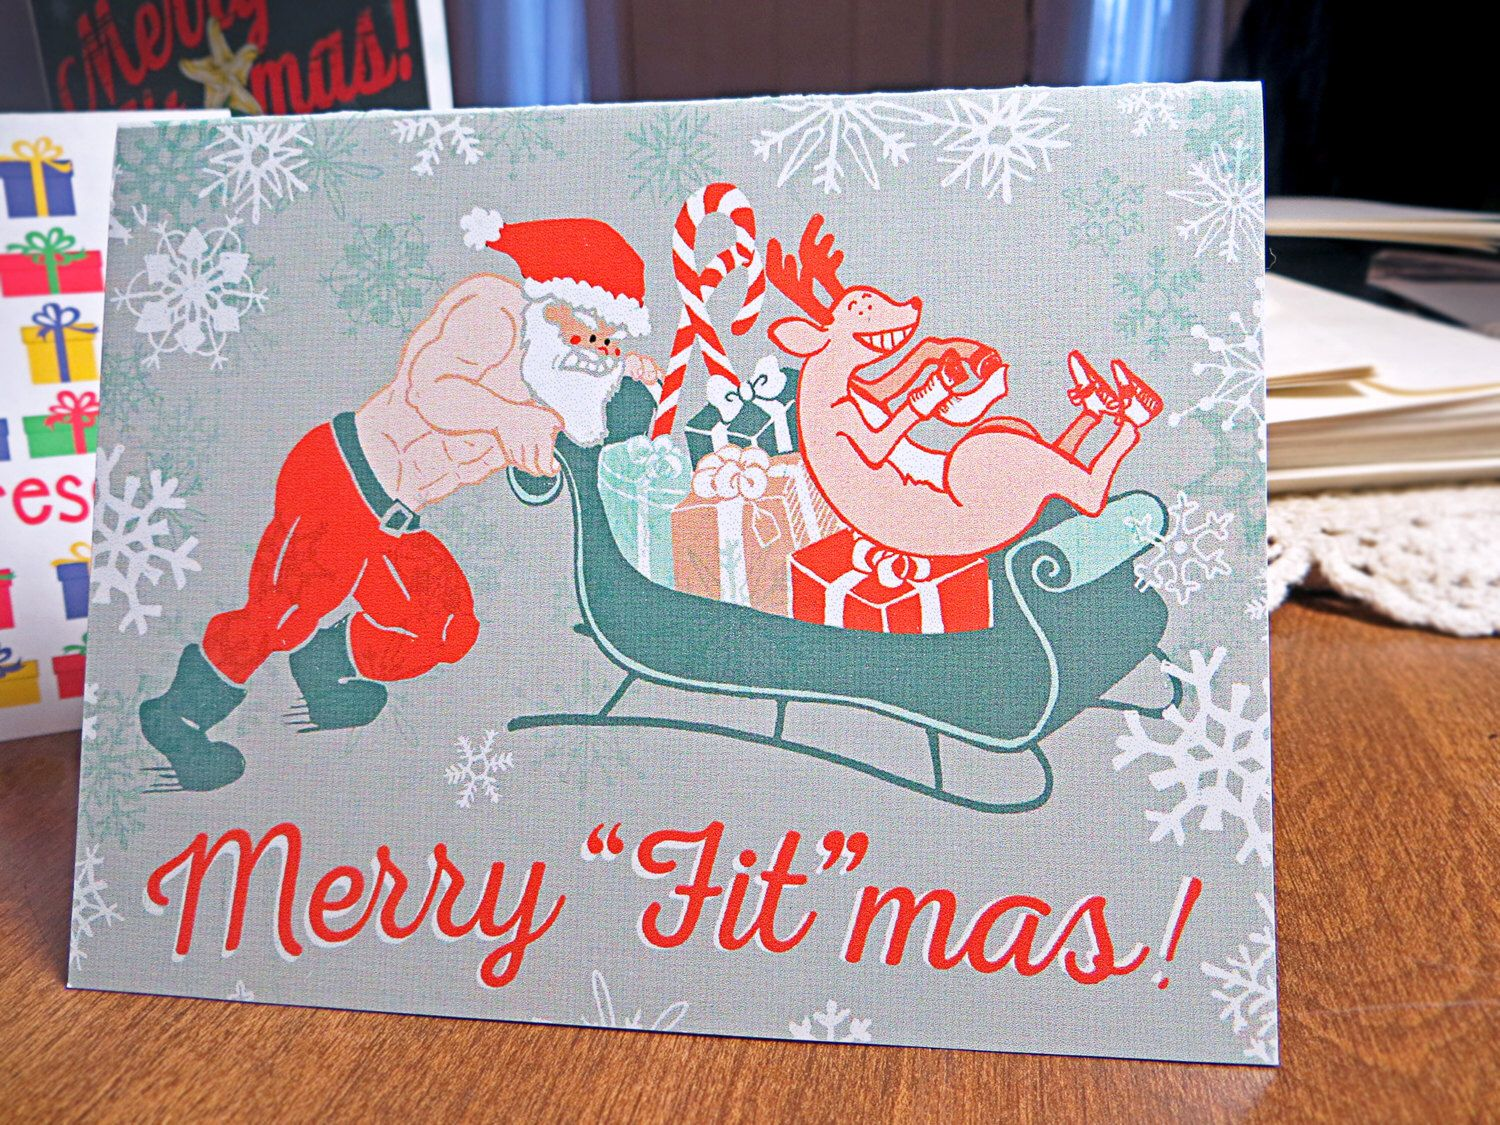 Pin about Christmas cards, Holiday greeting cards and ...